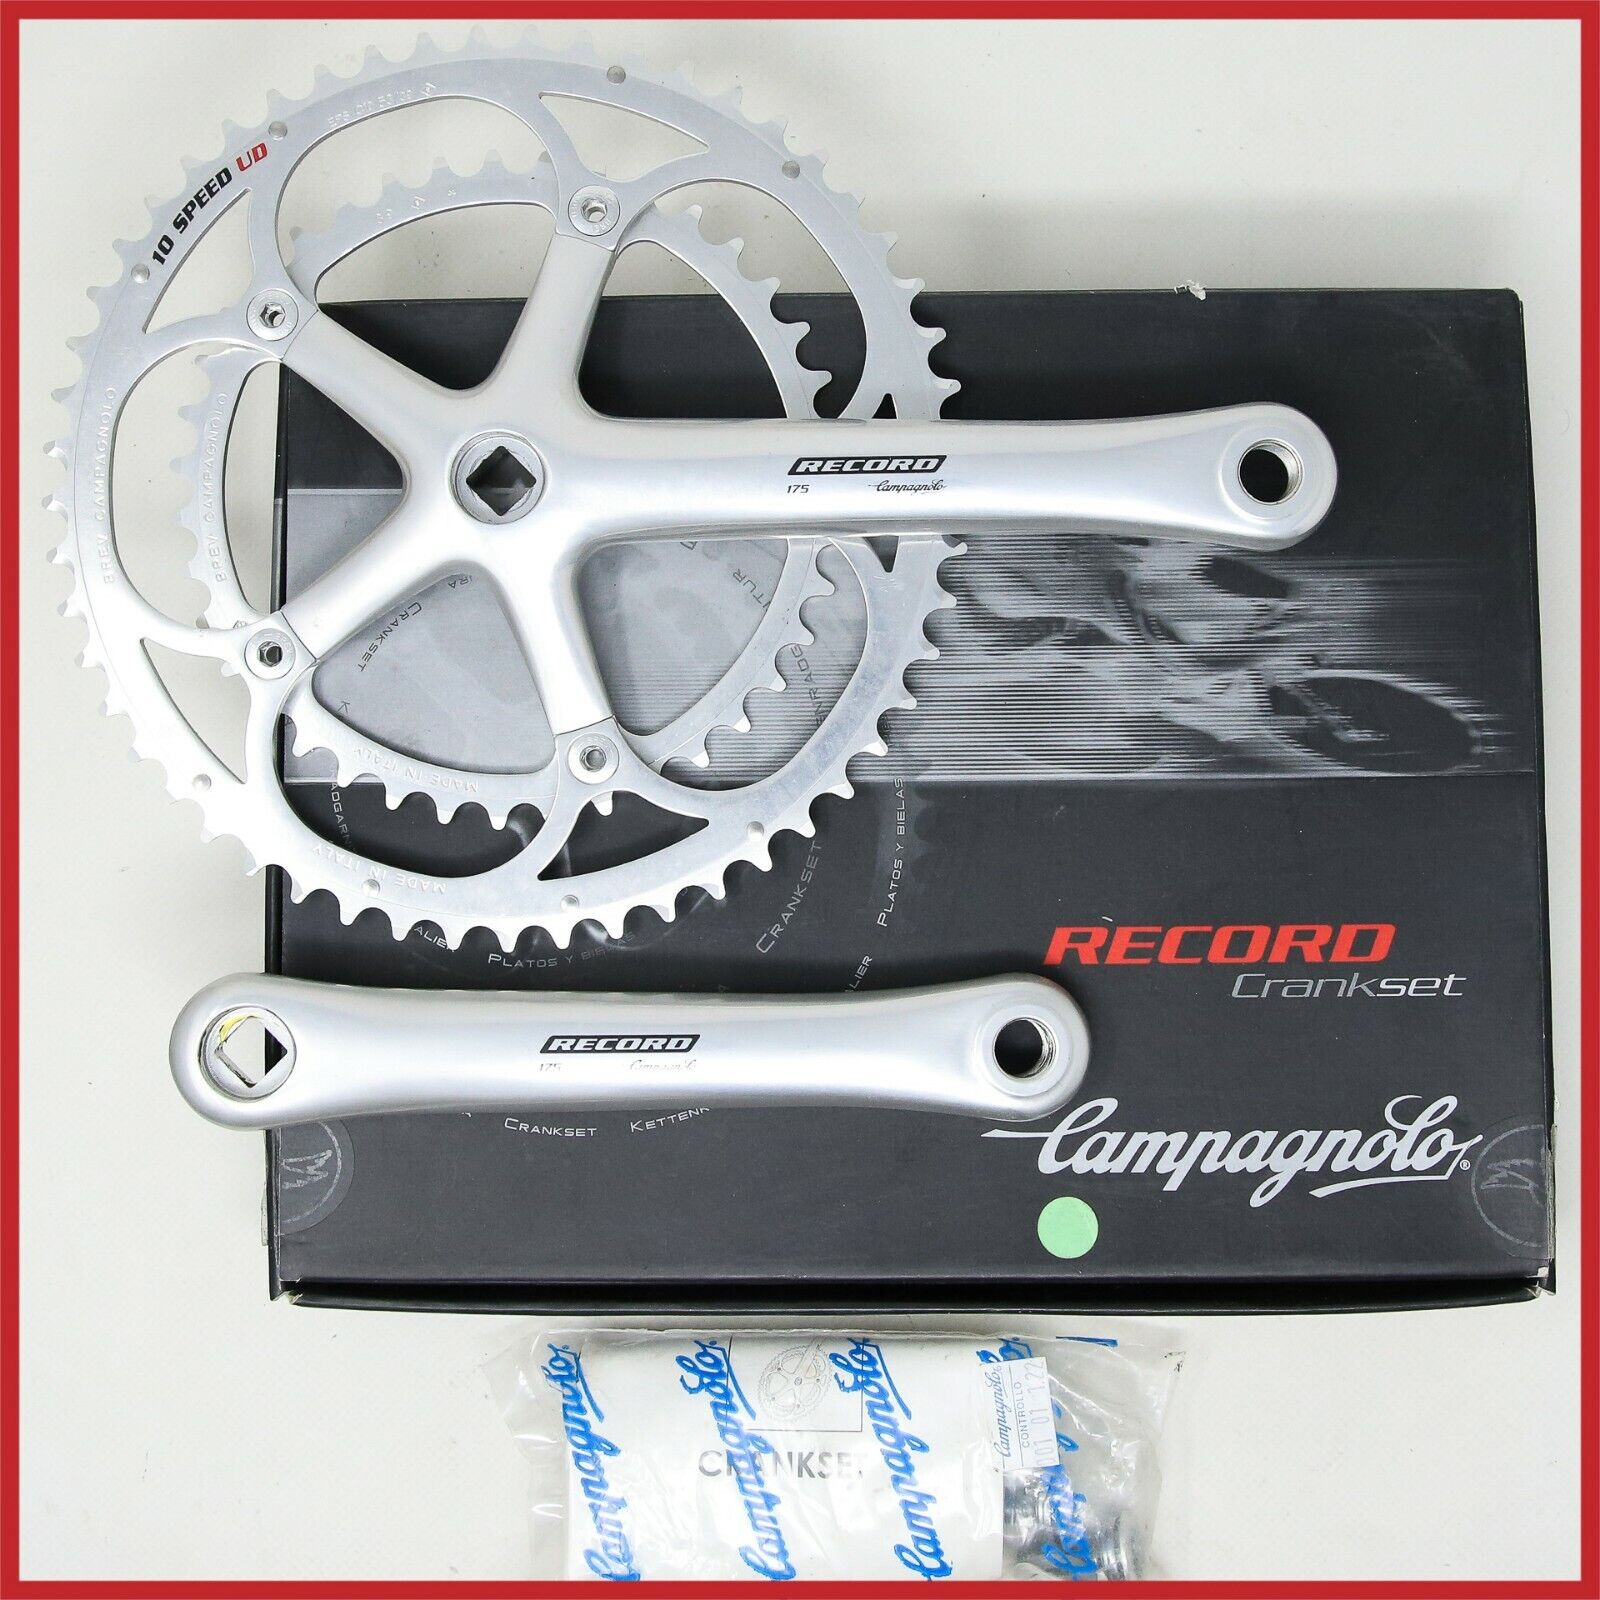 NOS CAMPAGNOLO RECORD CRANKSET 175mm  53-39T UD EPS 10s SPEED SQUARE TAPER BIKE  a lot of surprises